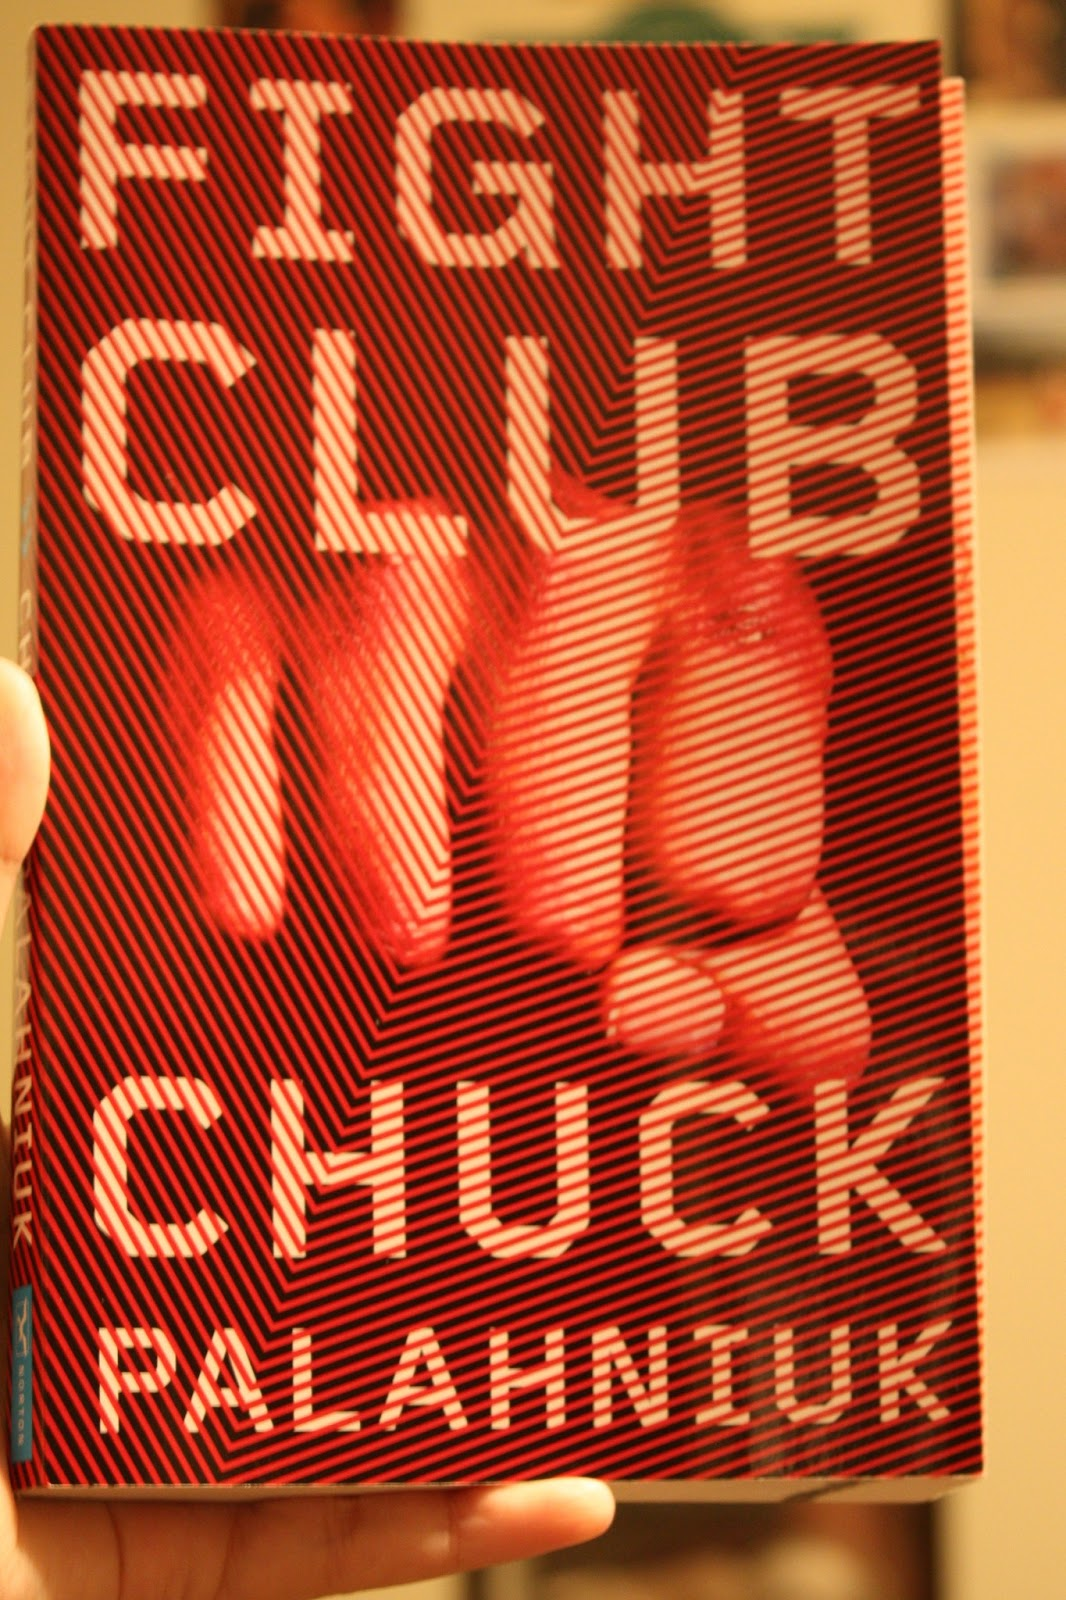 consumerism in the movie fight club and the book culture jam The representation of materialist consumerism in 'fight club' and american beauty and the narrative parallels between at the start of the movie jack lives the perfect consumerist tyler uses the members of 'fight club' to perpetrate other culture jams and.